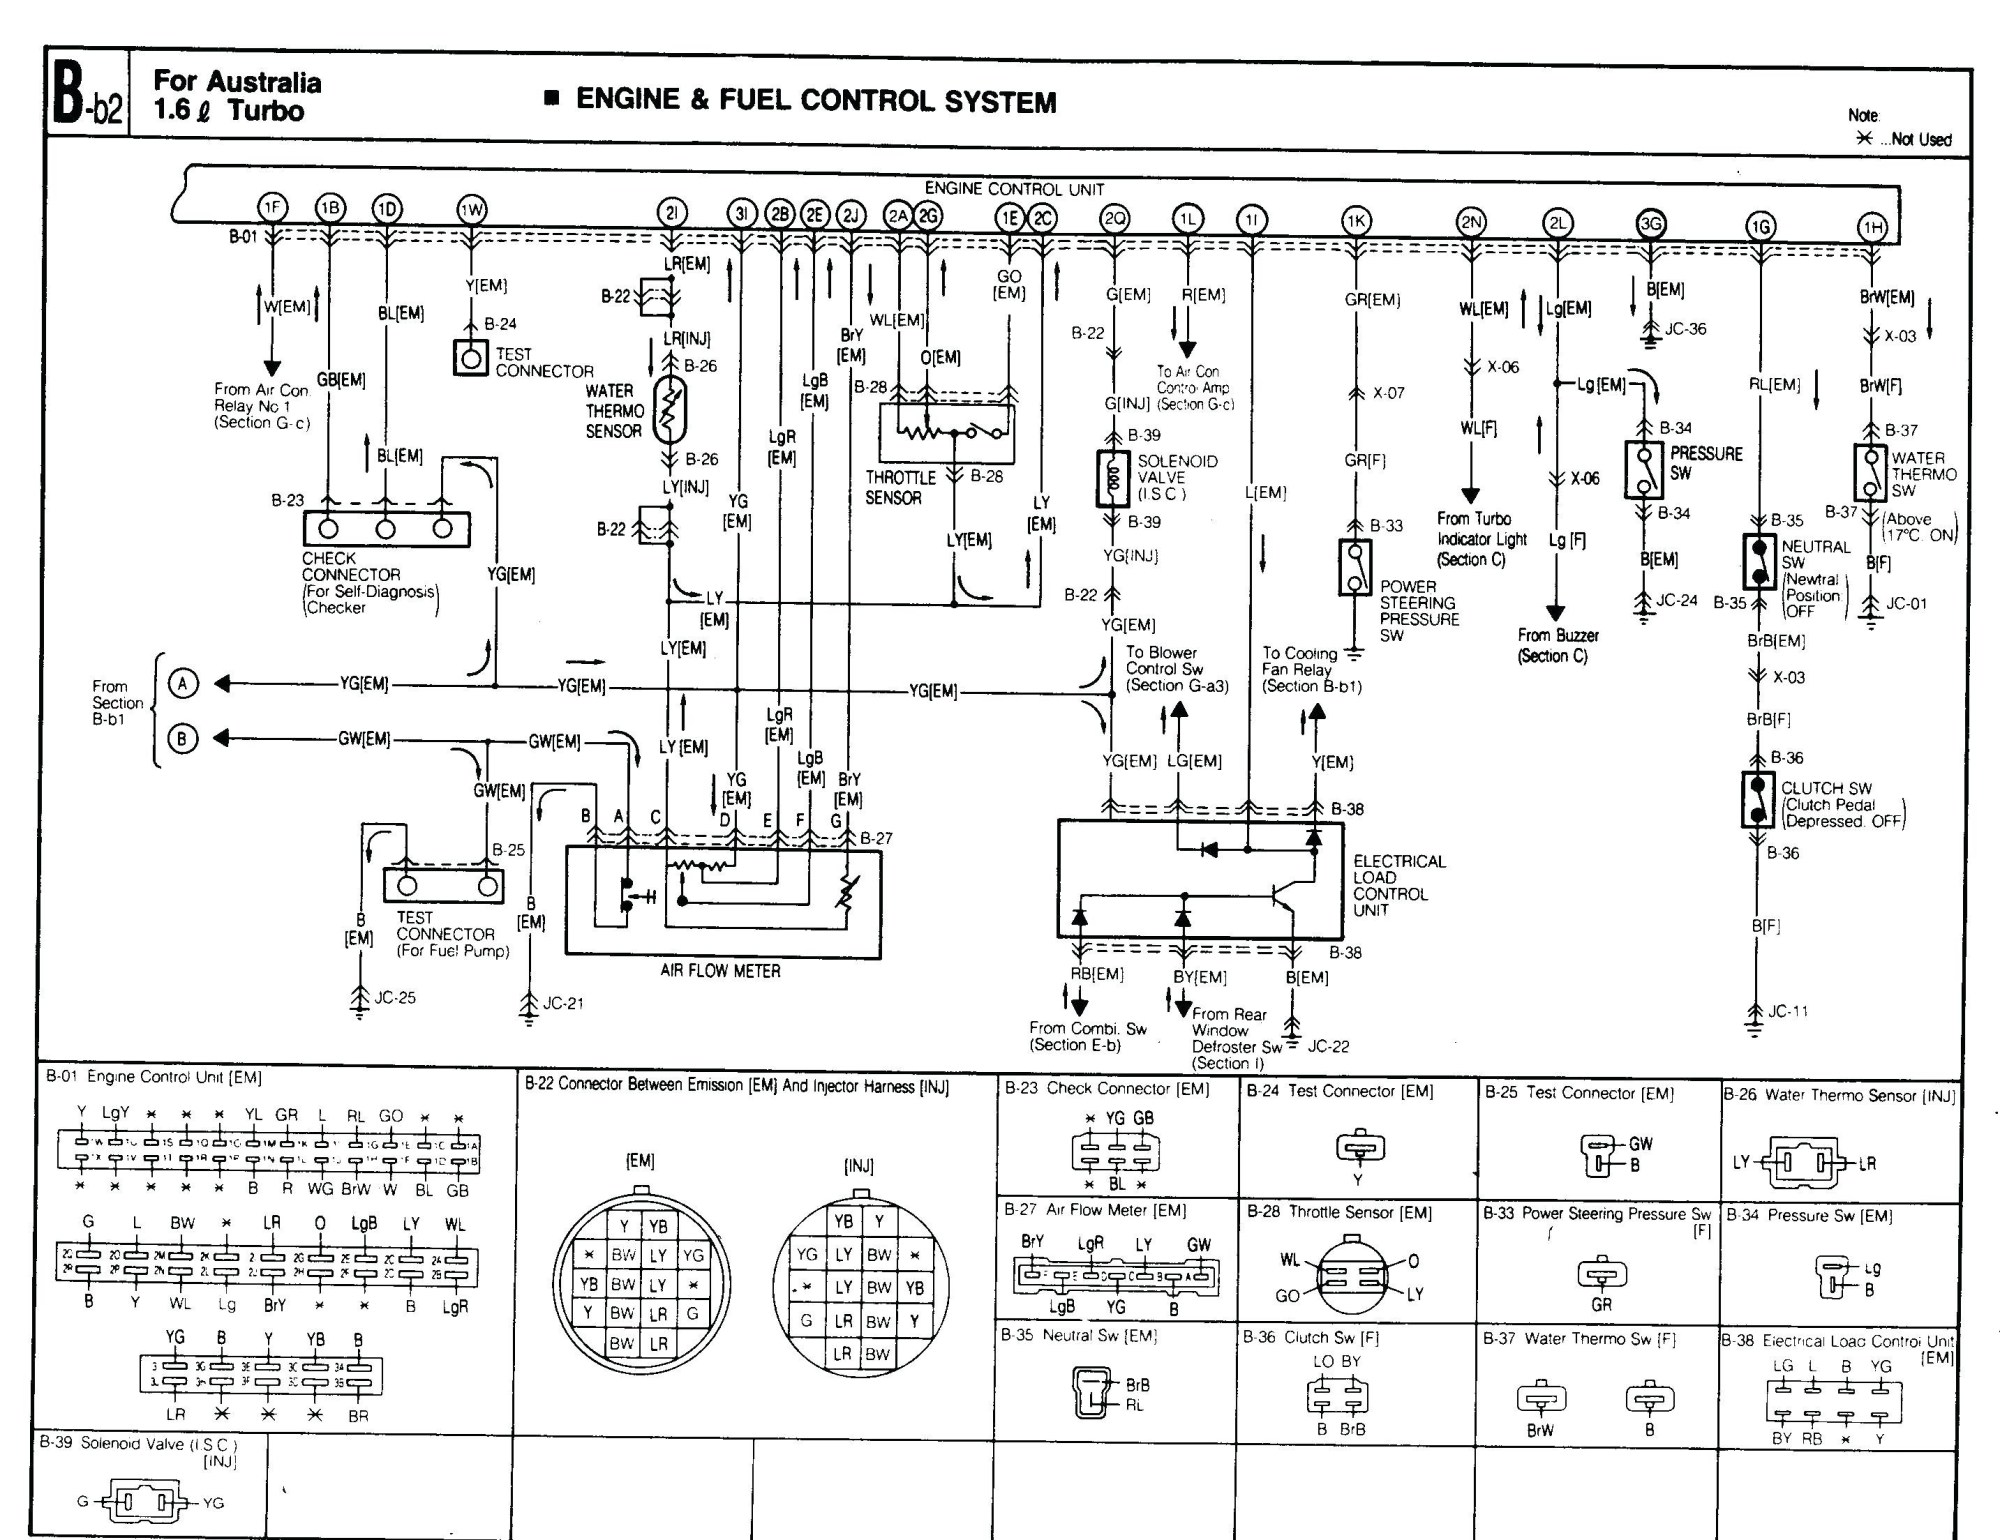 hight resolution of mazda mpv engine diagram mazda wiring diagram wiring diagram of mazda mpv engine diagram 1995 mazda